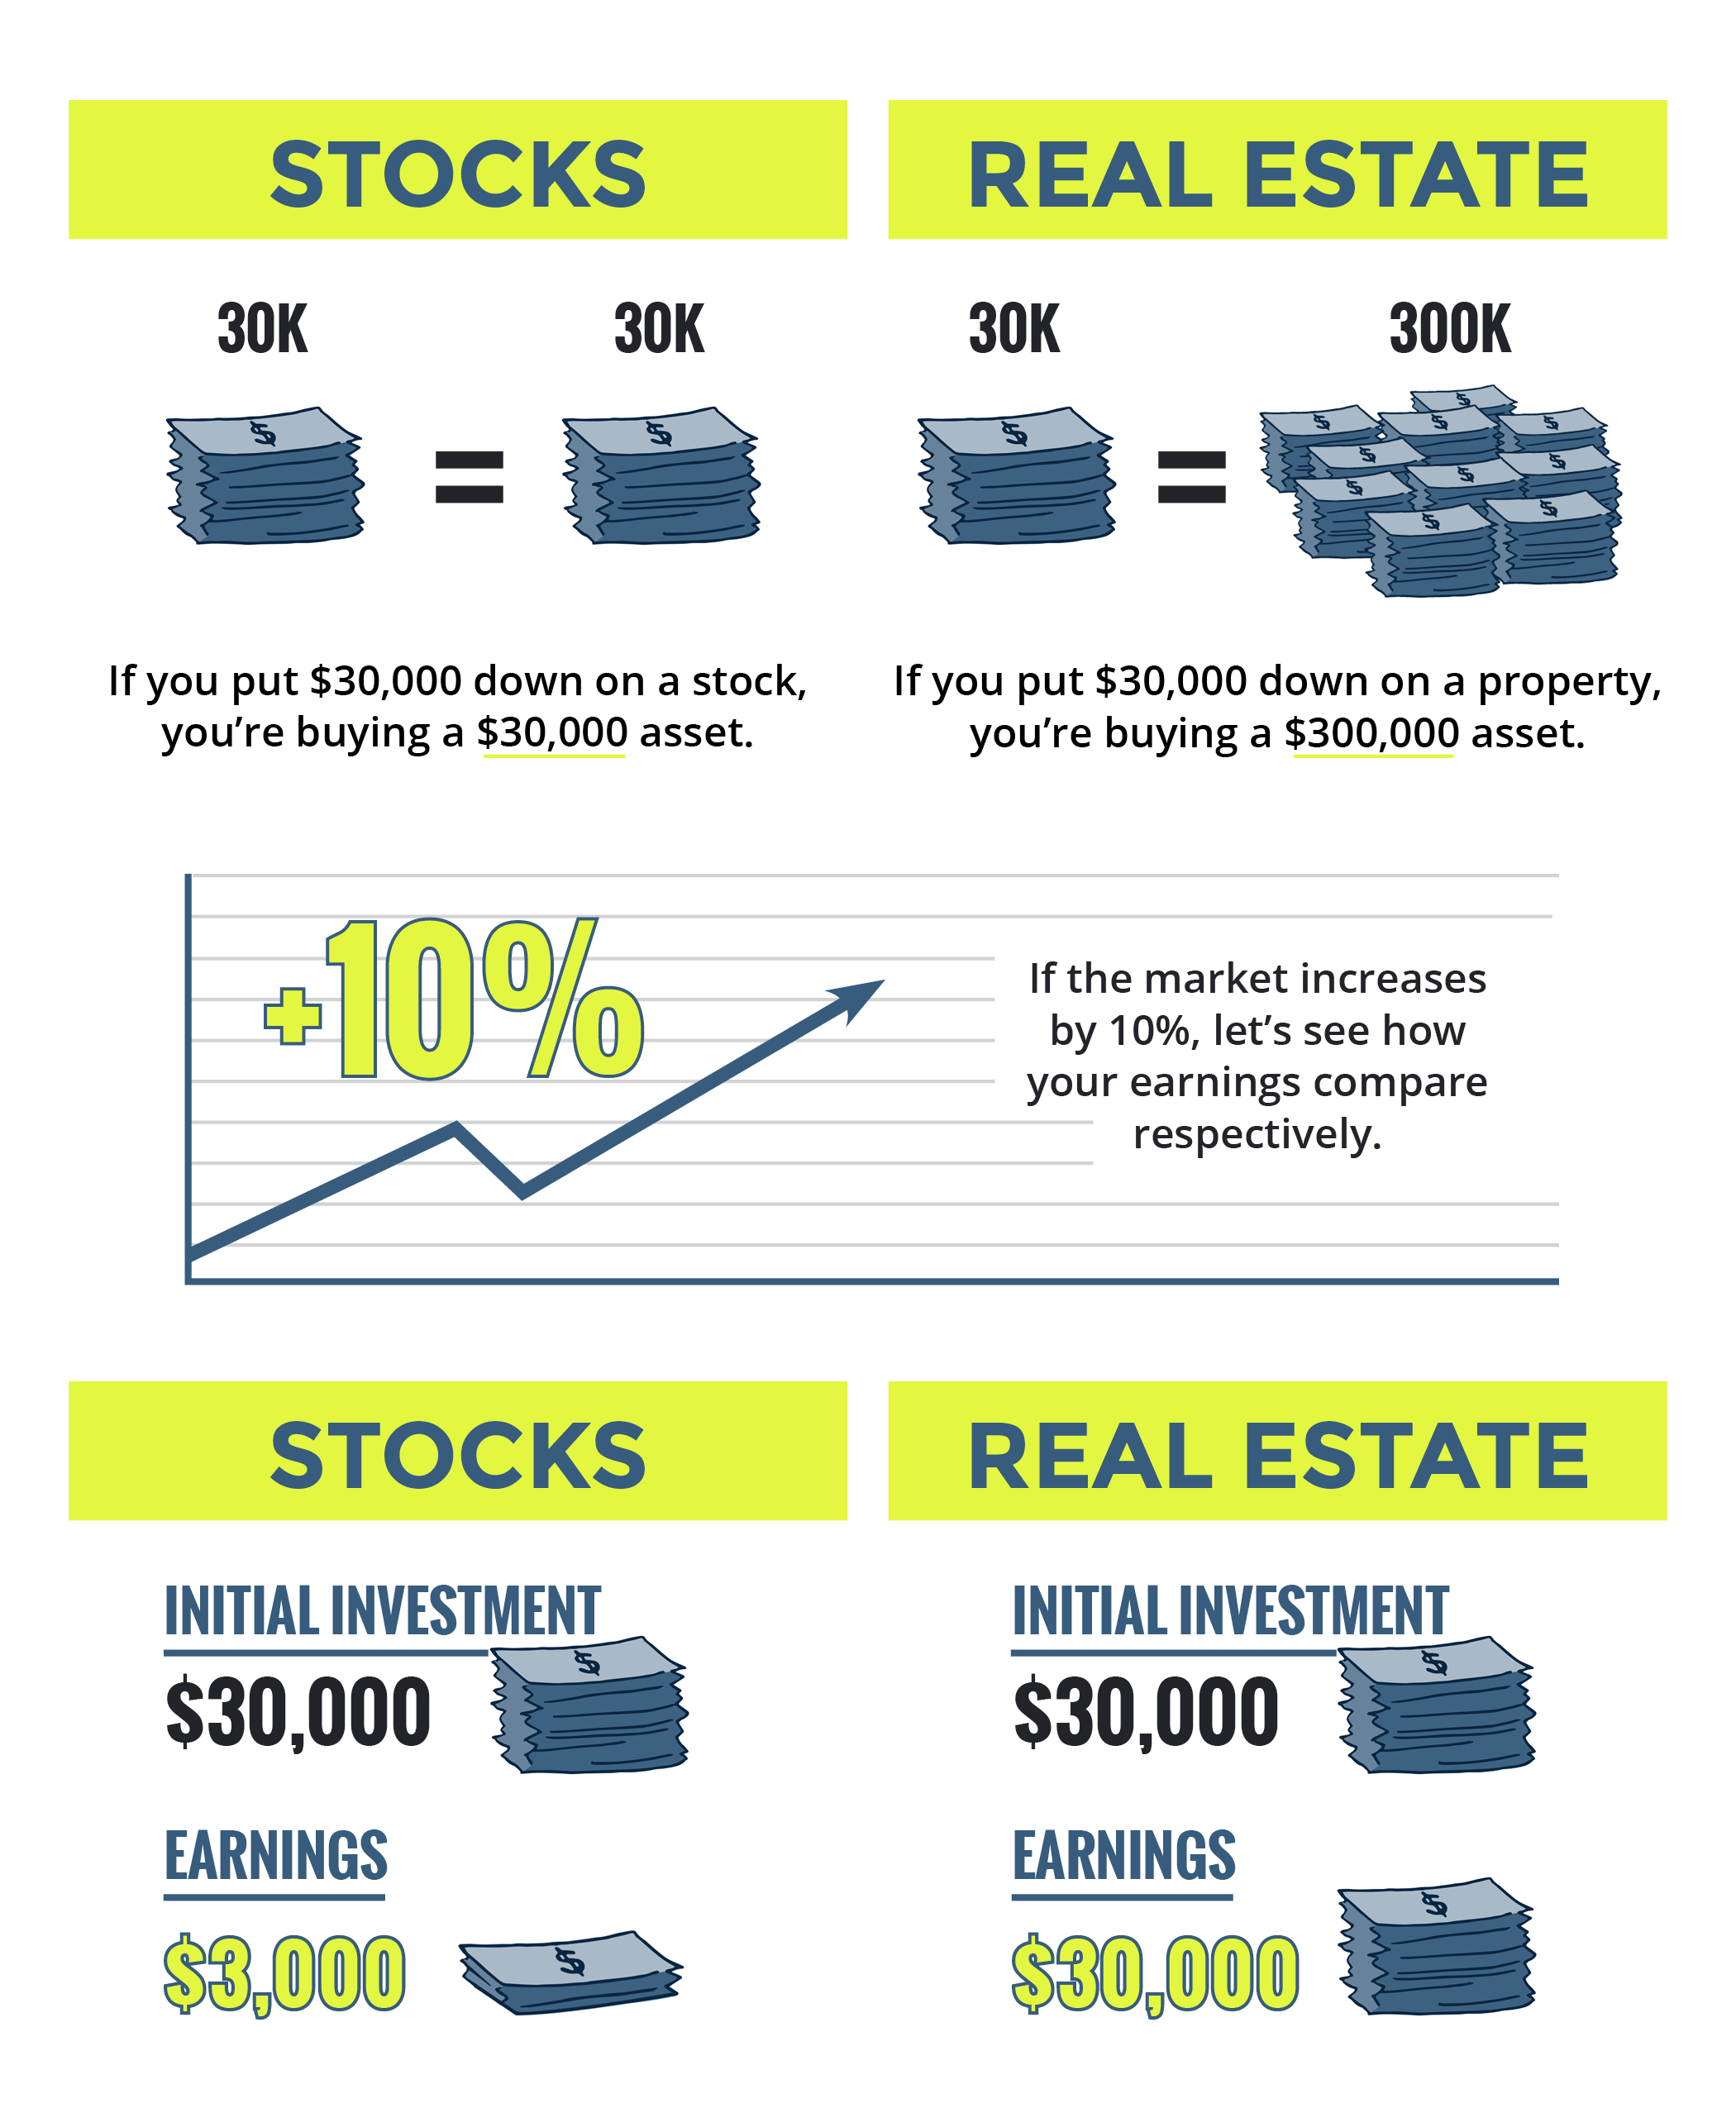 stocks v real estate infographic2